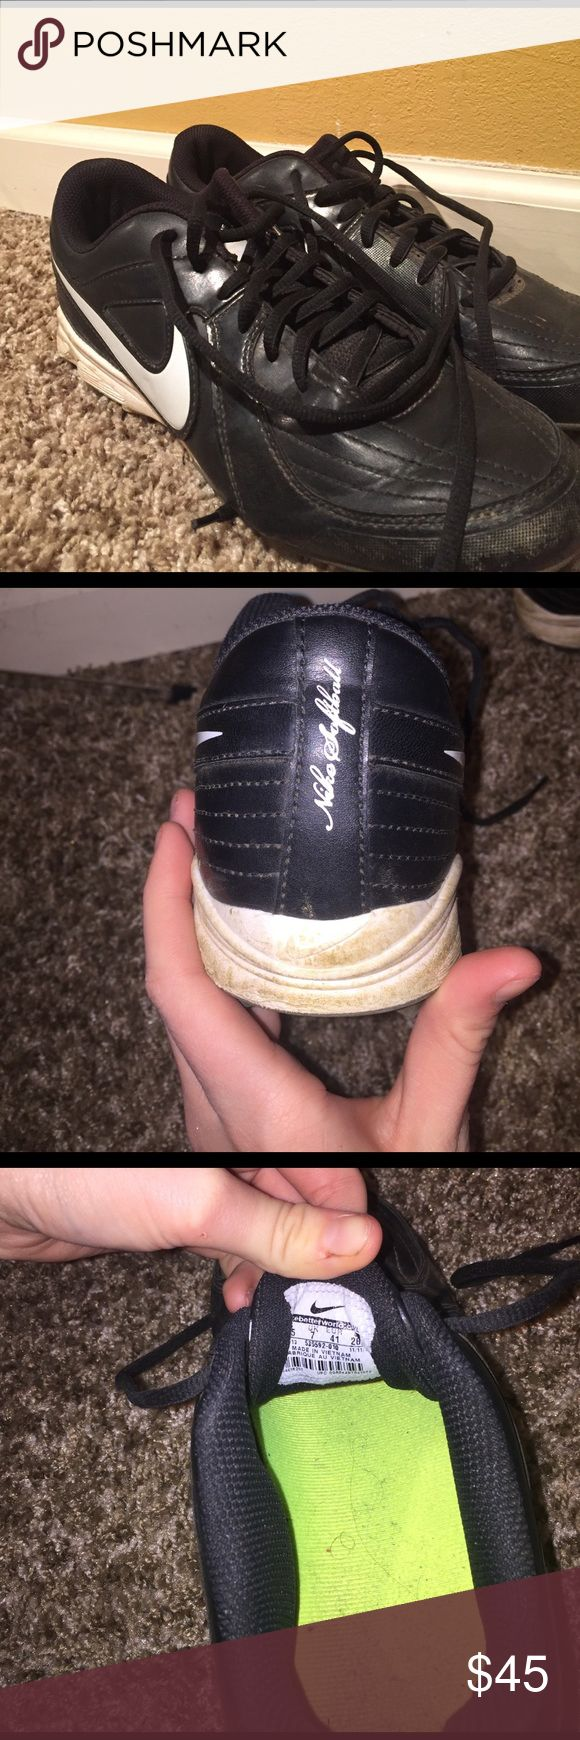 Nike Softball Cleats Ready for this upcoming softball season and can't find the perfect cleats for you? Well look no farther! Lightly used cleats for someone on a budget, but wanting high-end cleats. These are size 9.5 in the U.S. and they fit perfectly and are so comfortable. Used a handful of times throughout softball season. They were originally $120, but offering $45. Nike Shoes Athletic Shoes